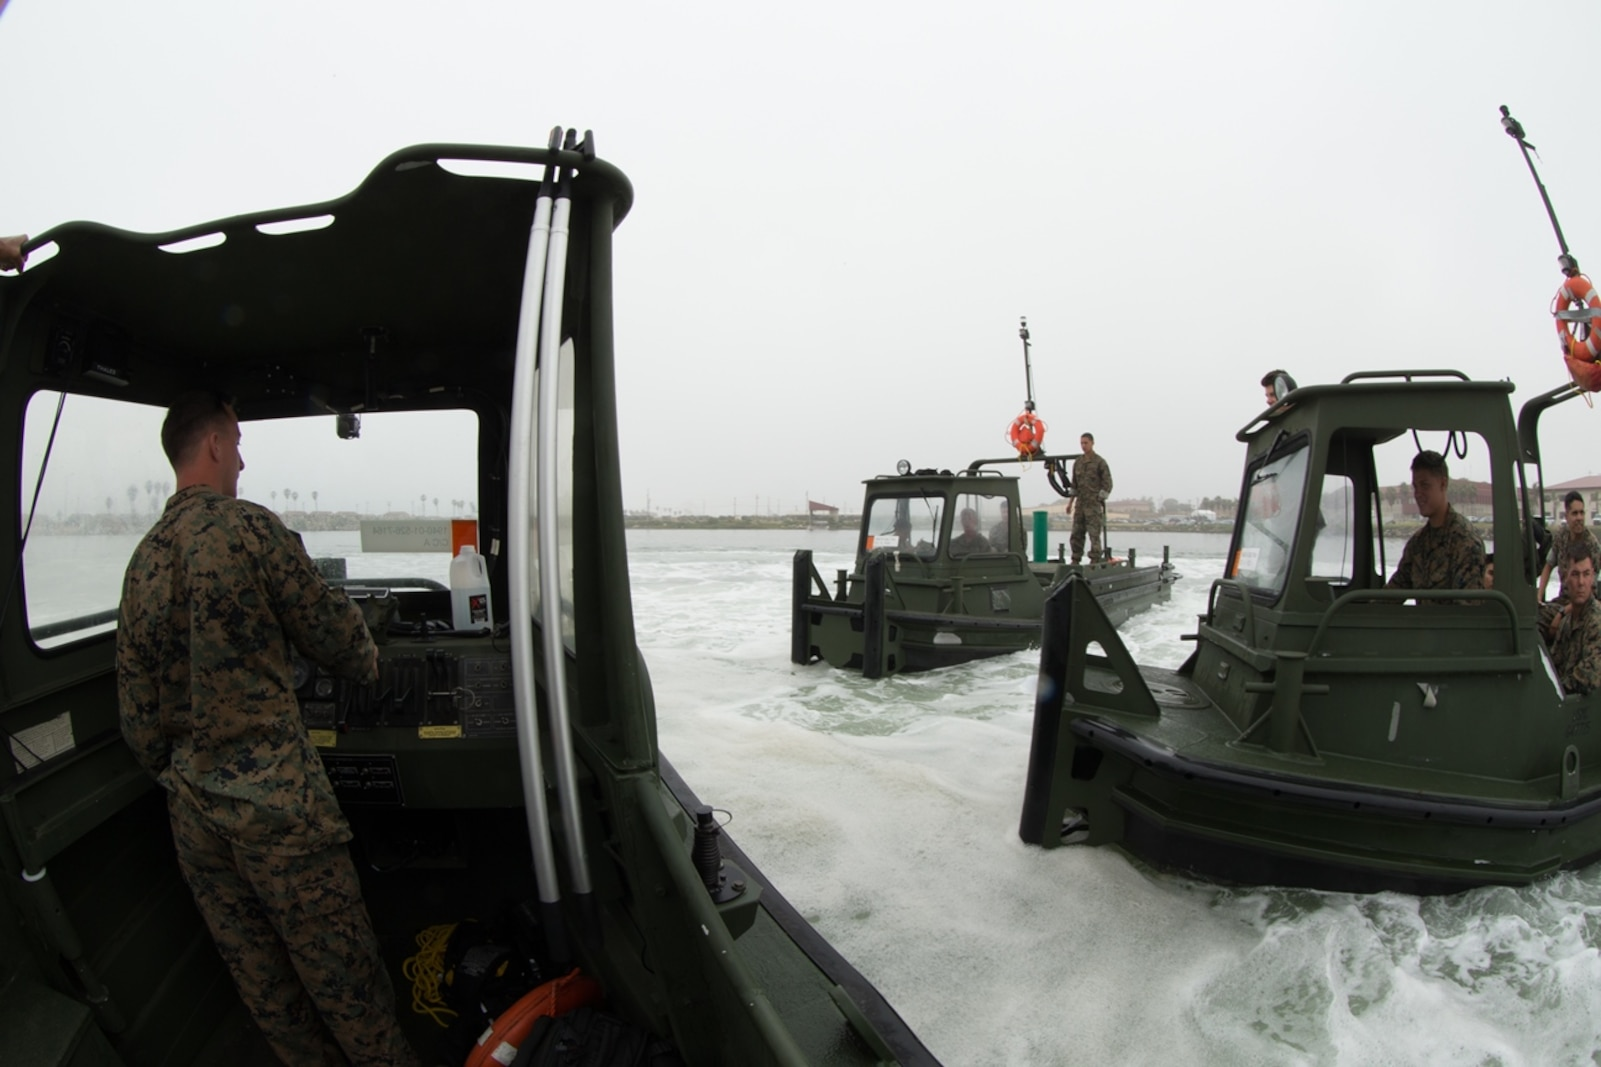 U.S. Marines with Bridge Company, 7th Engineer Support Battalion, 1st Marine Logistics Group perform several Bridge Erection Boat (BEB) maneuvers along the coast of Camp Pendleton, Calif., June 21, 2017. The BEB deploys improved ribbon bridges, which are long two-way platforms used to transport heavy equipment, such as tanks, over bodies of water.  (U.S. Marine Corps photo by Lance Cpl. Timothy Shoemaker)